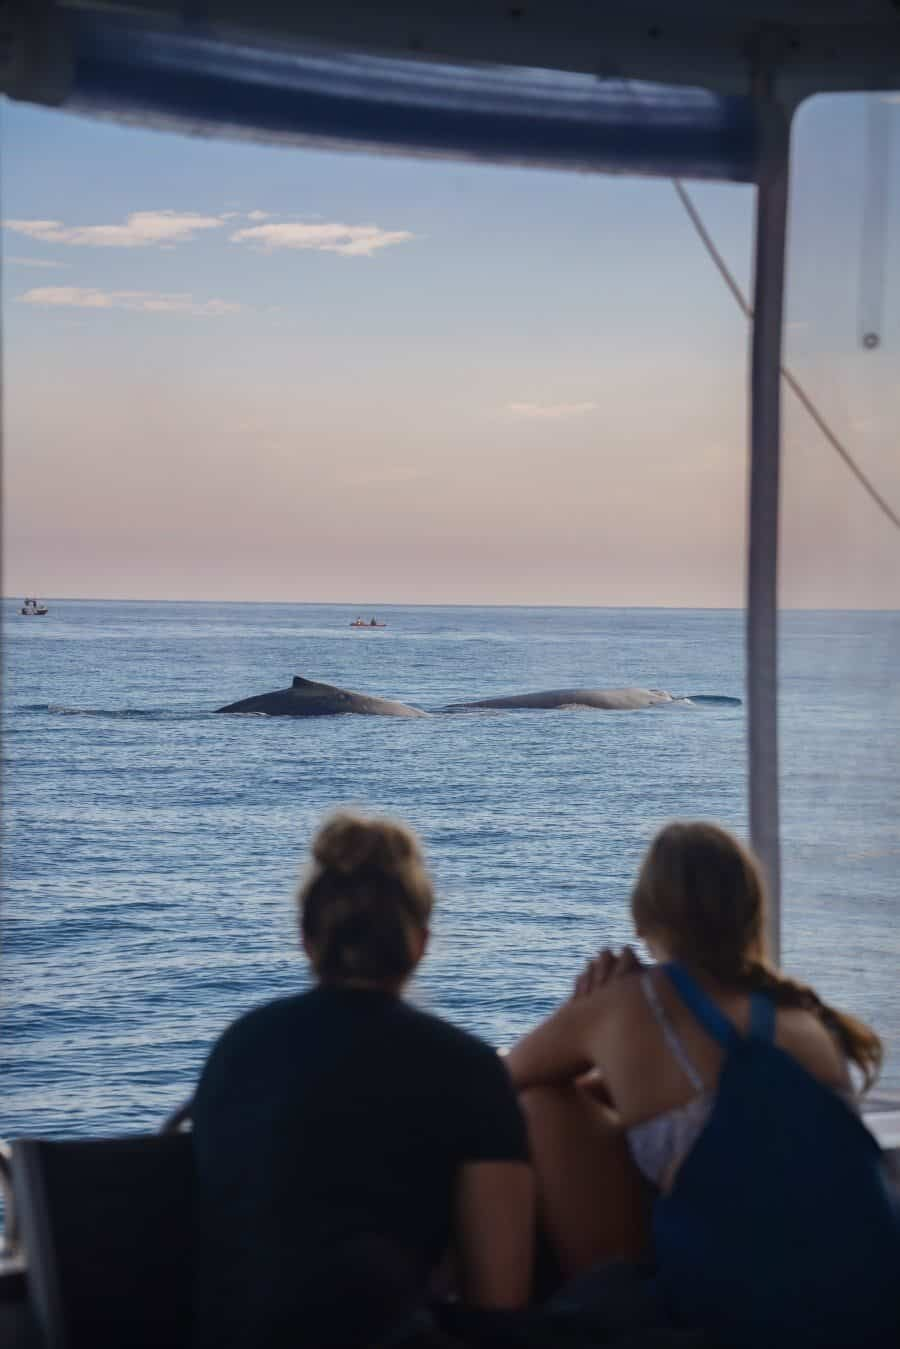 sunshine-coast-whale-swim-queensland-australia-01